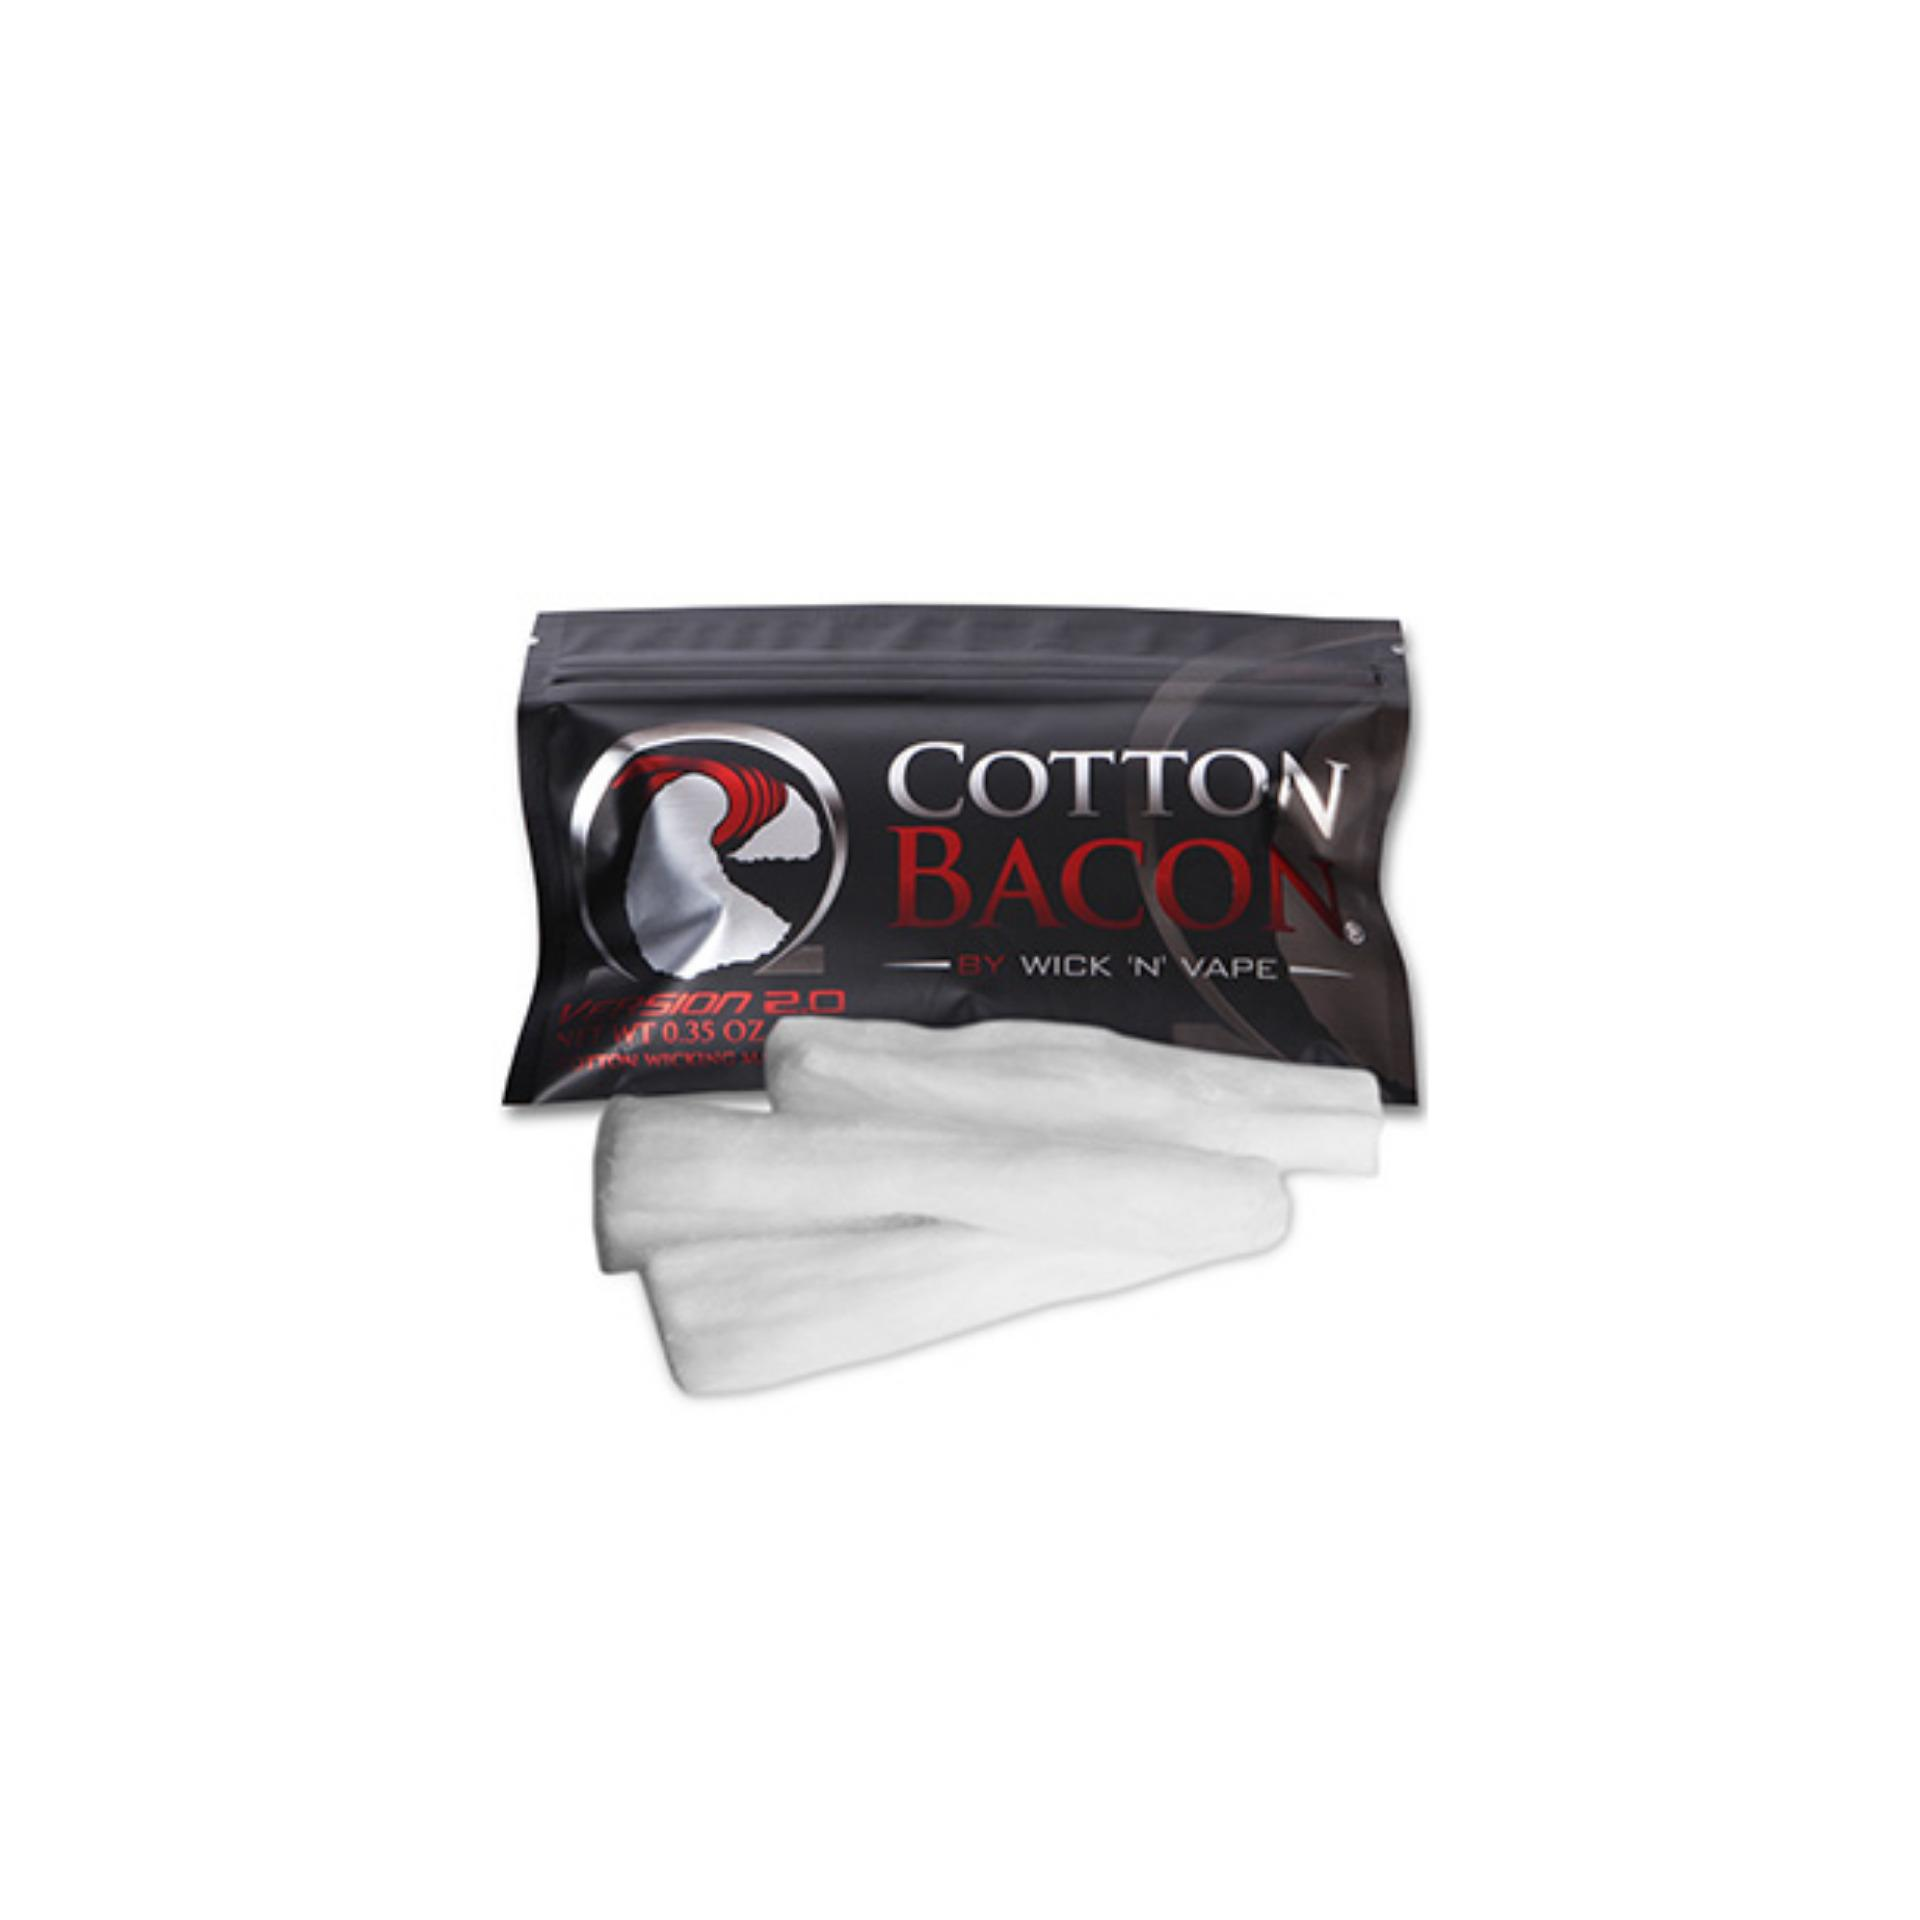 Local Cotton Bacon 50gr v2 Made in USA ...